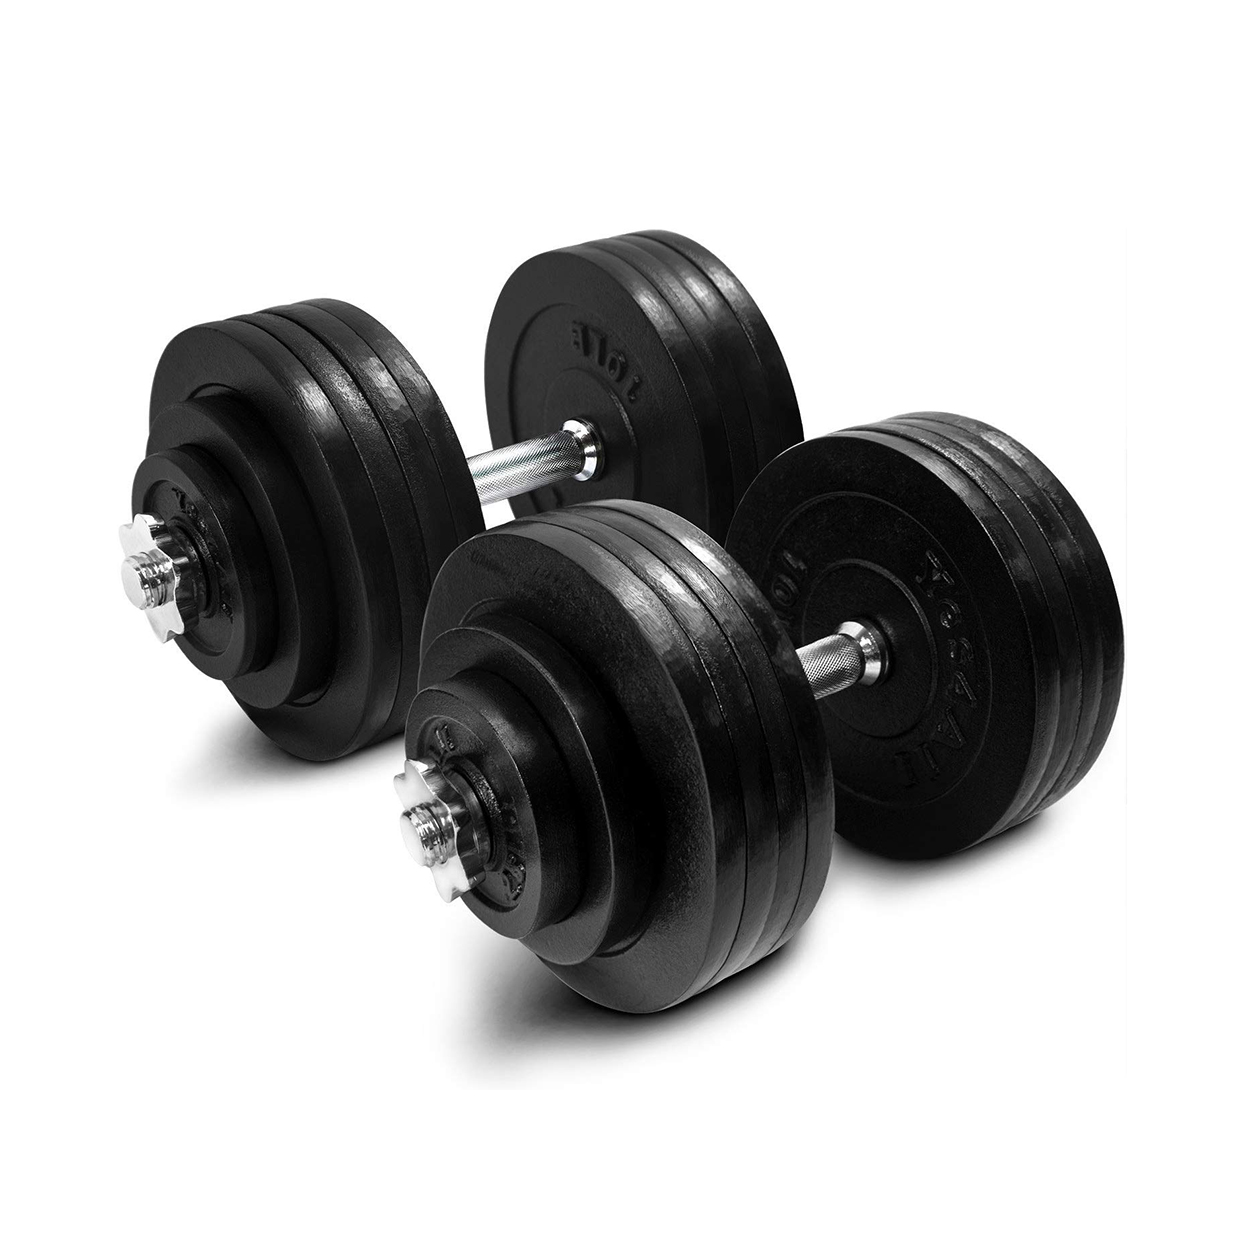 Yes4All Adjustable Dumbbells - 200 lb Dumbbell Weights